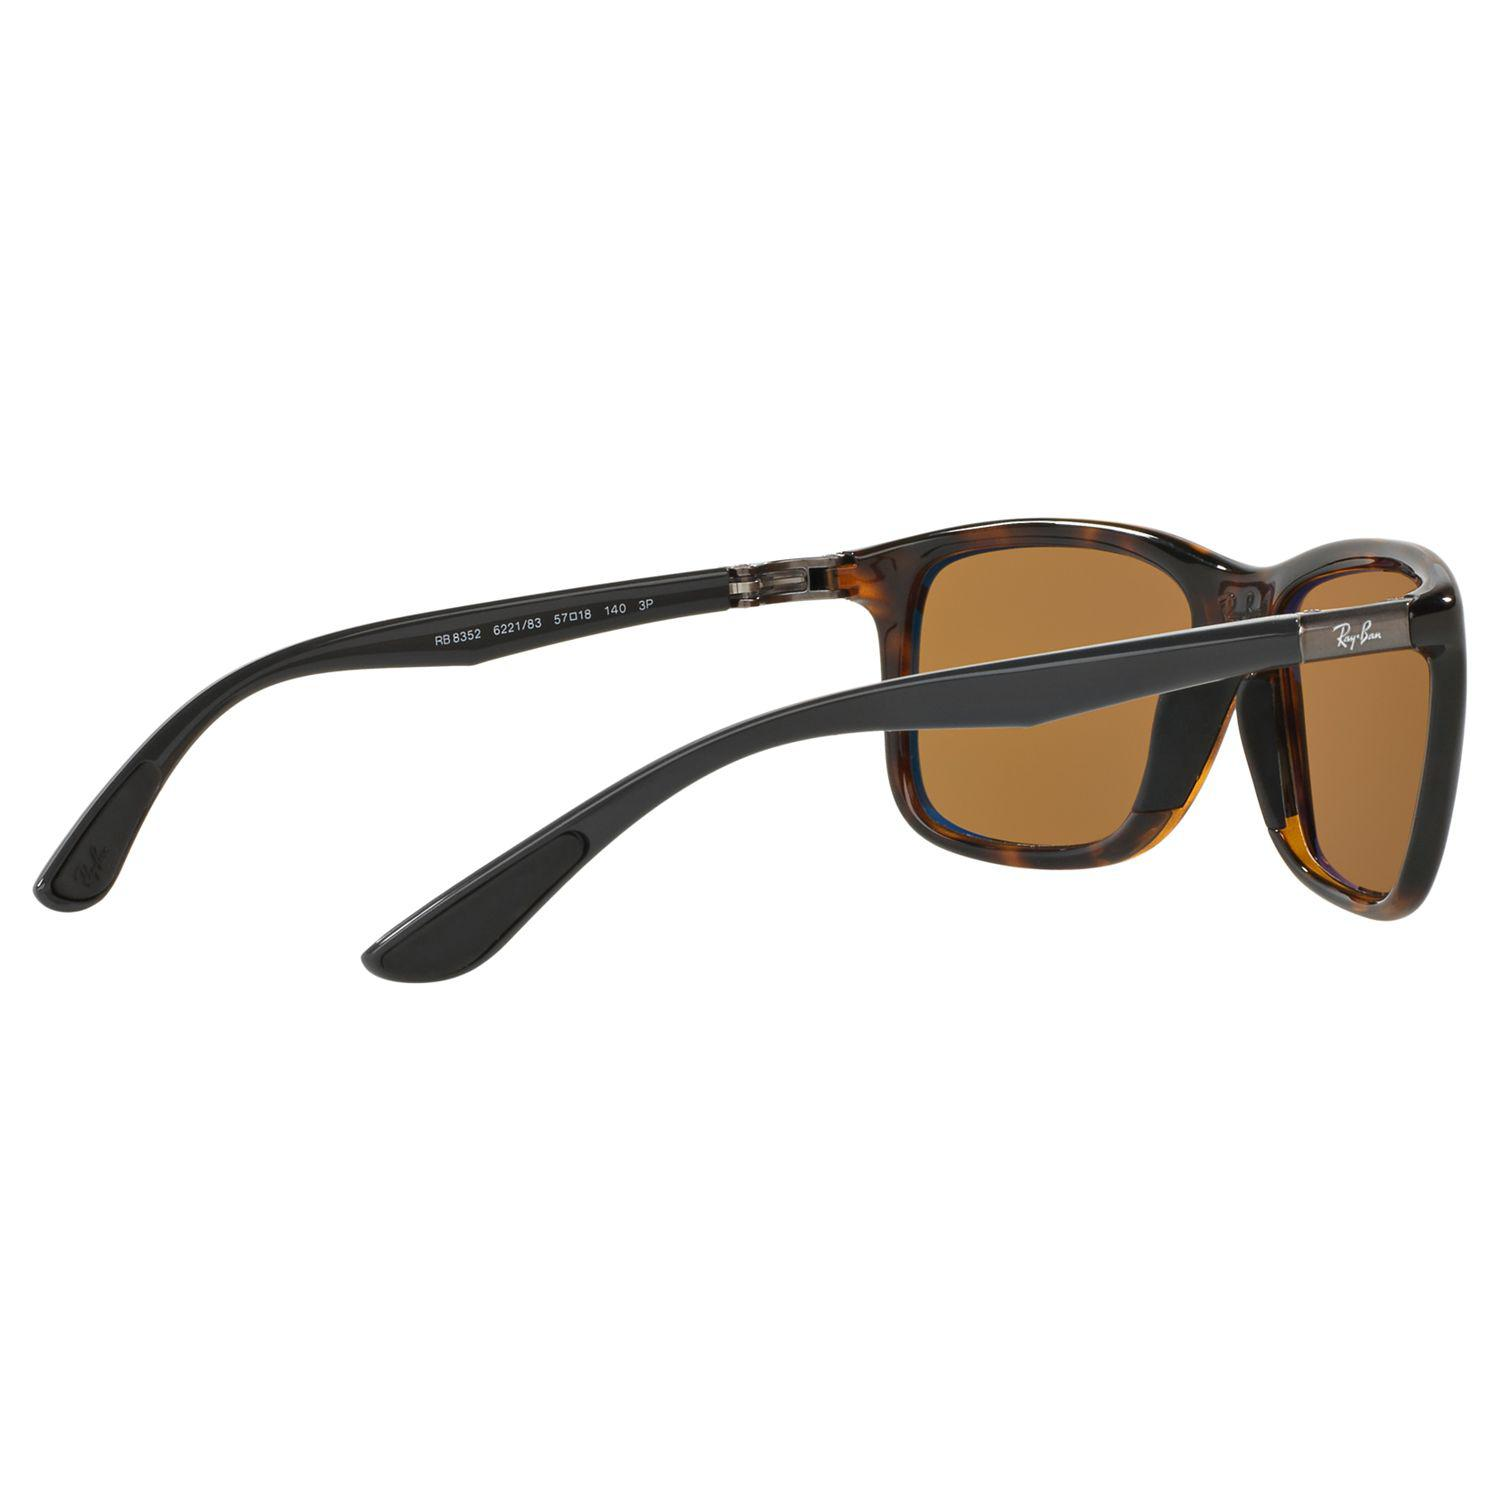 Ray-Ban Synthetic Rb8352 Polarised Square Sunglasses in Tortoise/Brown (Brown) for Men